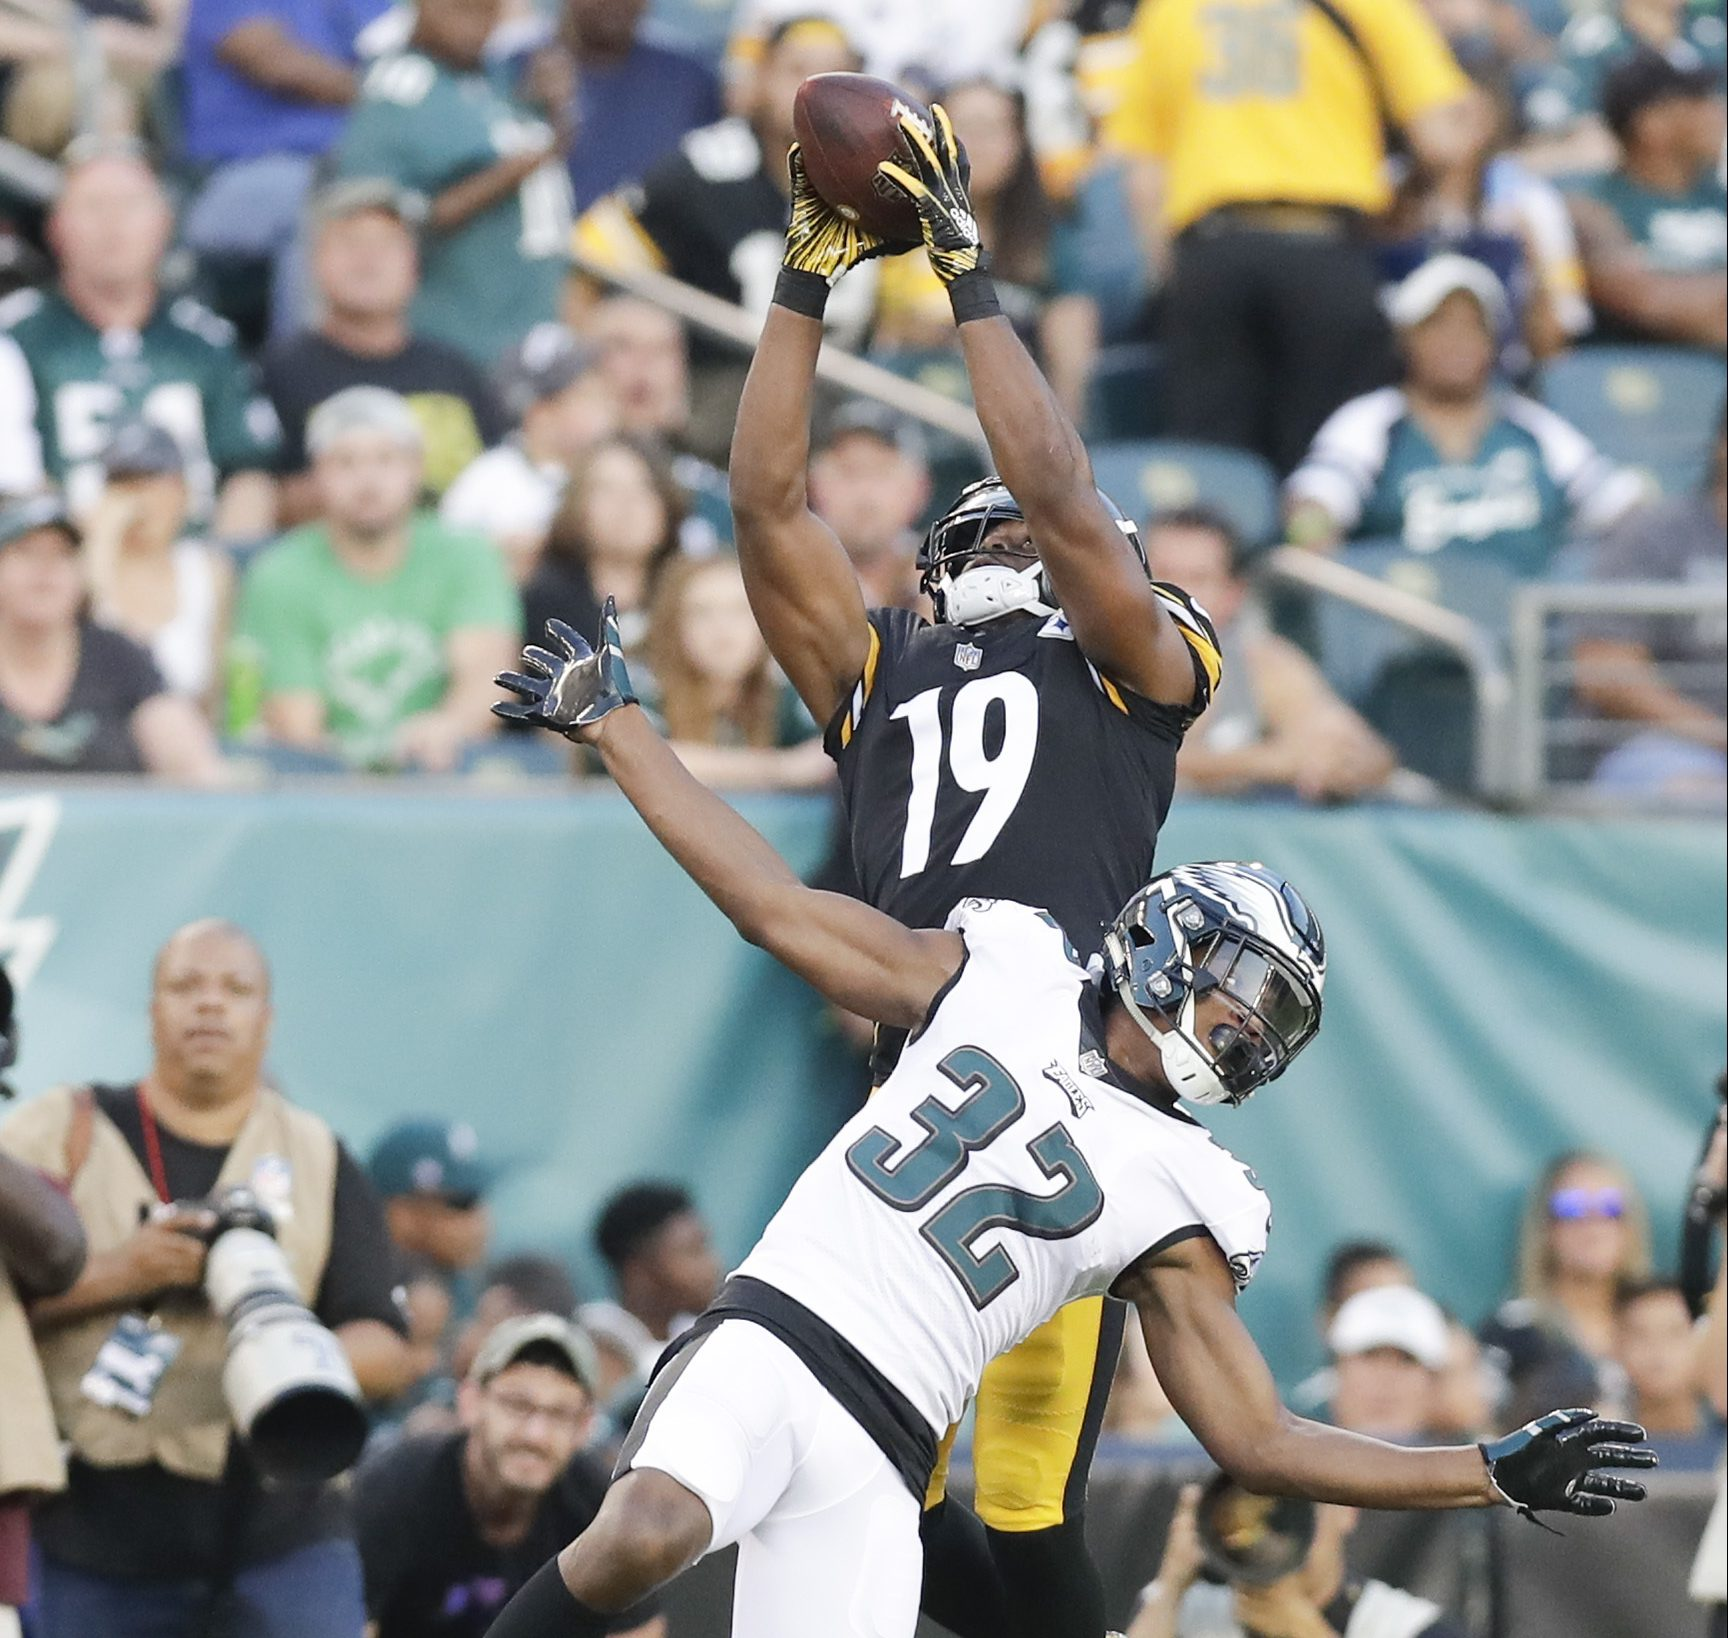 Pittsburgh Steelers wide receiver JuJu Smith-Schuster catches a first-quarter touchdown pass over Eagles cornerback Rasul Douglas in a preseason game on Thursday, August 9, 2018 in Philadelphia.